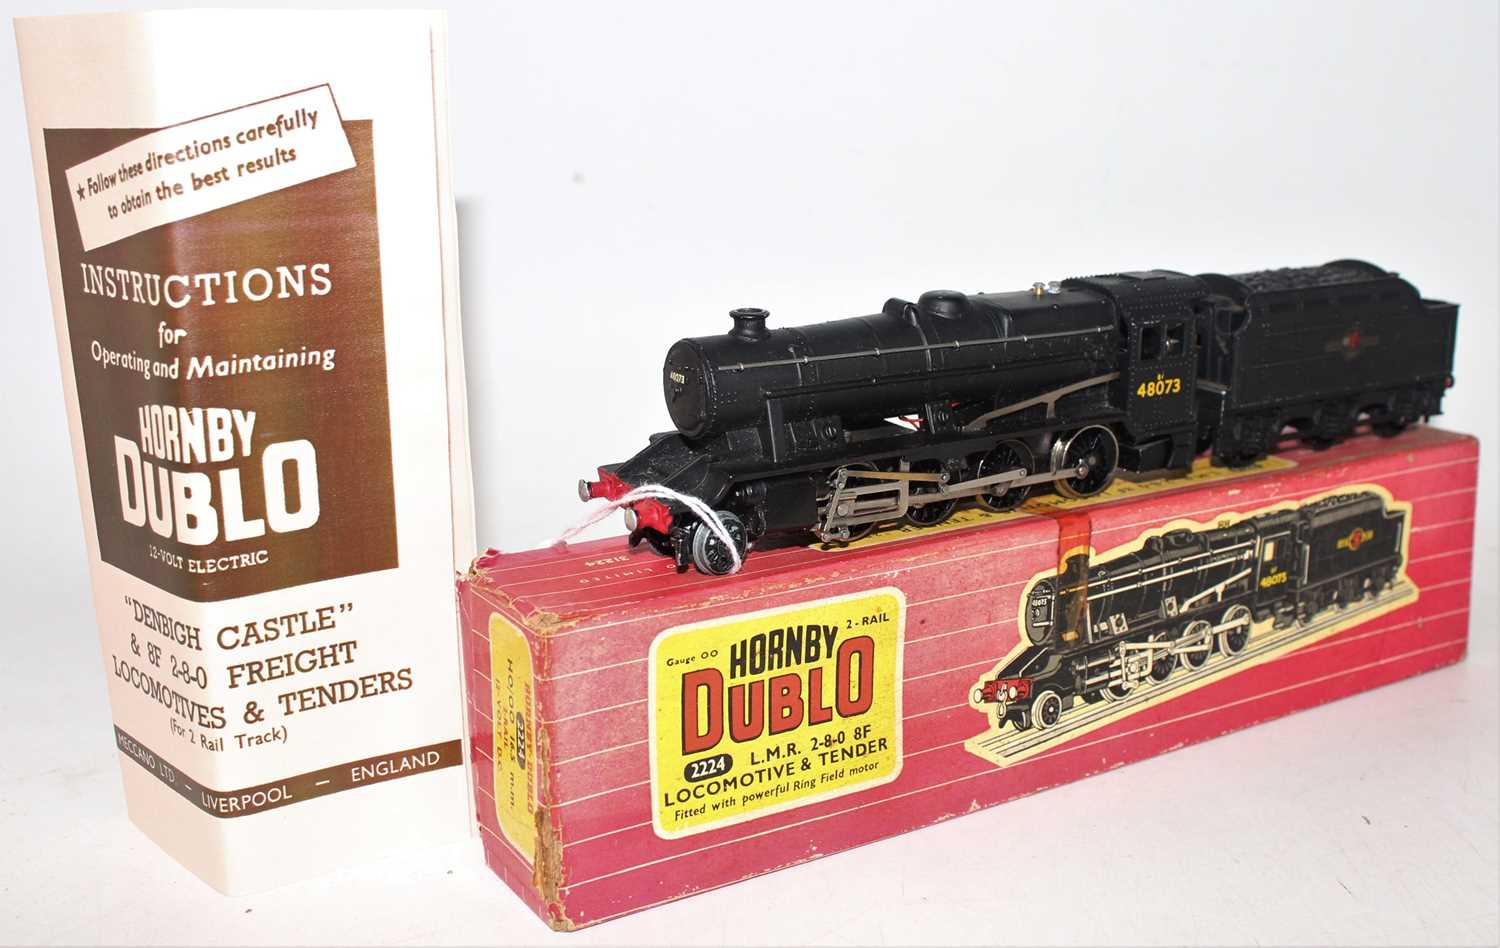 Hornby Dublo 2224 2-rail locomotive and tender 2-8-0 8F freight locomotive, BR 48073, ringfield